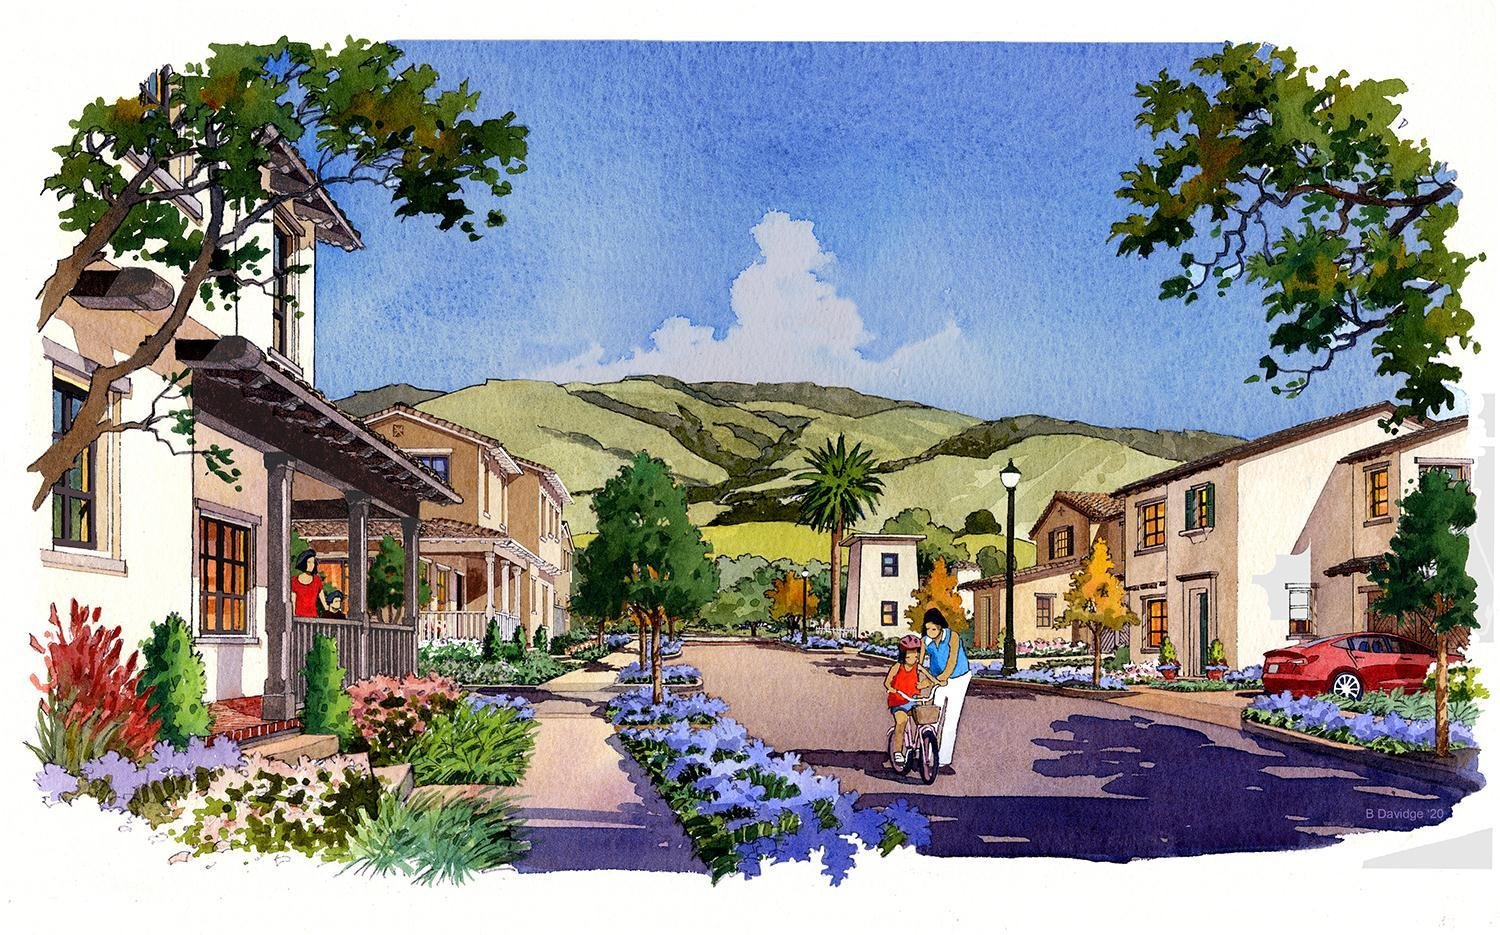 Heirloom by Robson Homes:17 new homes & 1 historic home designed along a single cul de sac